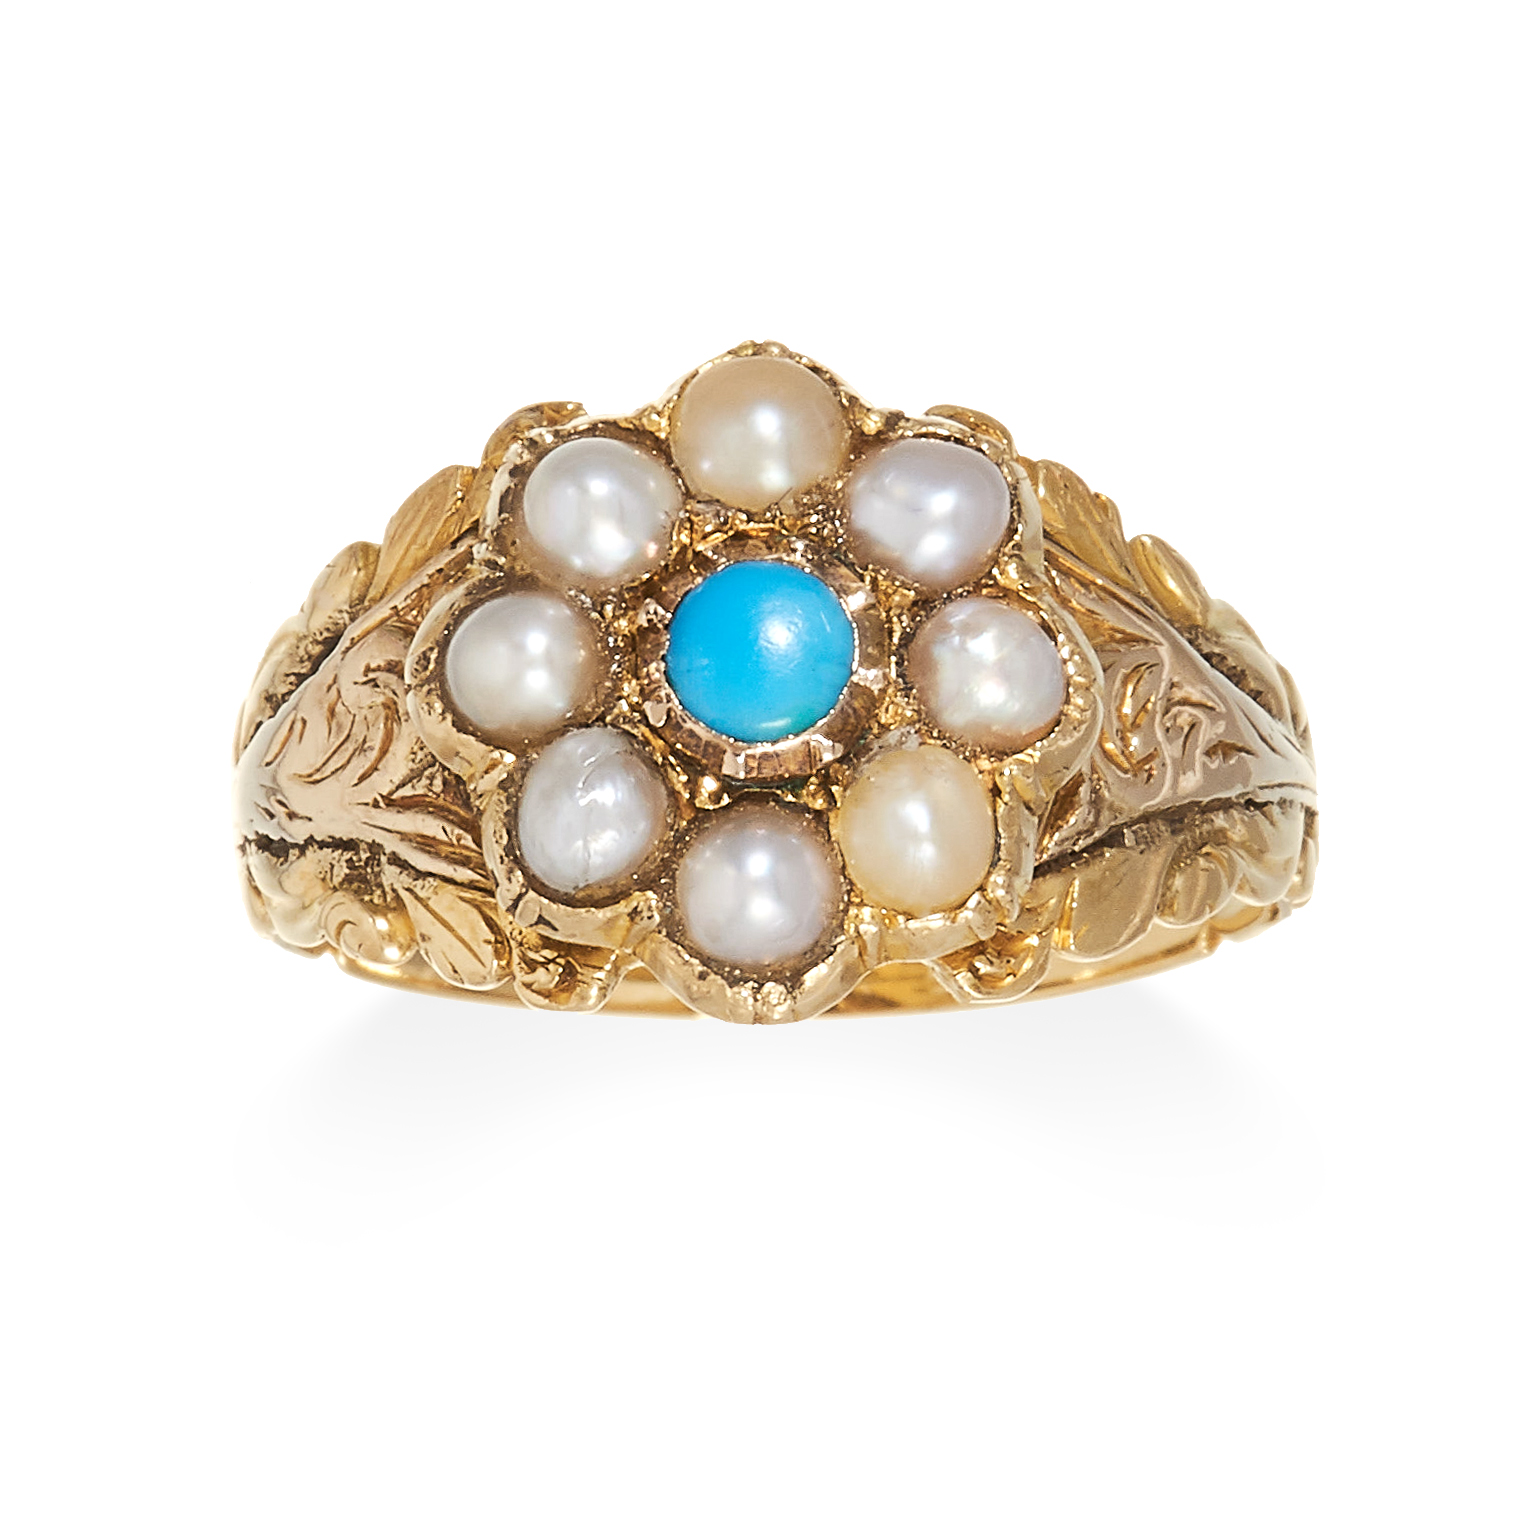 A TURQUOISE AND PEARL MOURNING RING, 19TH CENTURY in high carat yellow gold, set with a turquoise